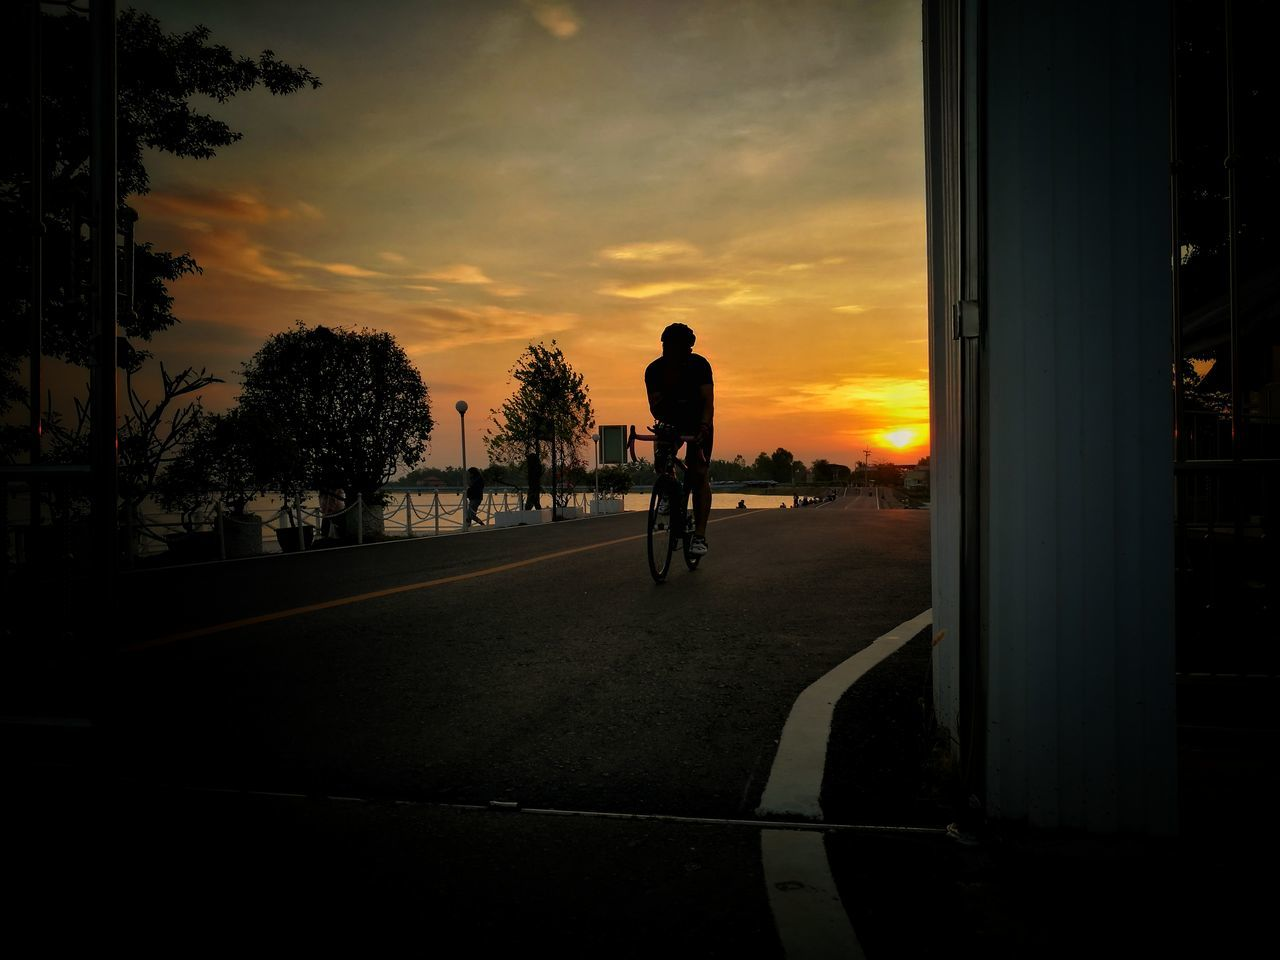 Sunset Tree Bicycle Silhouette Full Length Sky City Outdoors People Adults Only Only Men Adult Day Rhino RhinoSurinCyclingClub Sky And Clouds Streetphotography Street Photography Sports Sports Photography